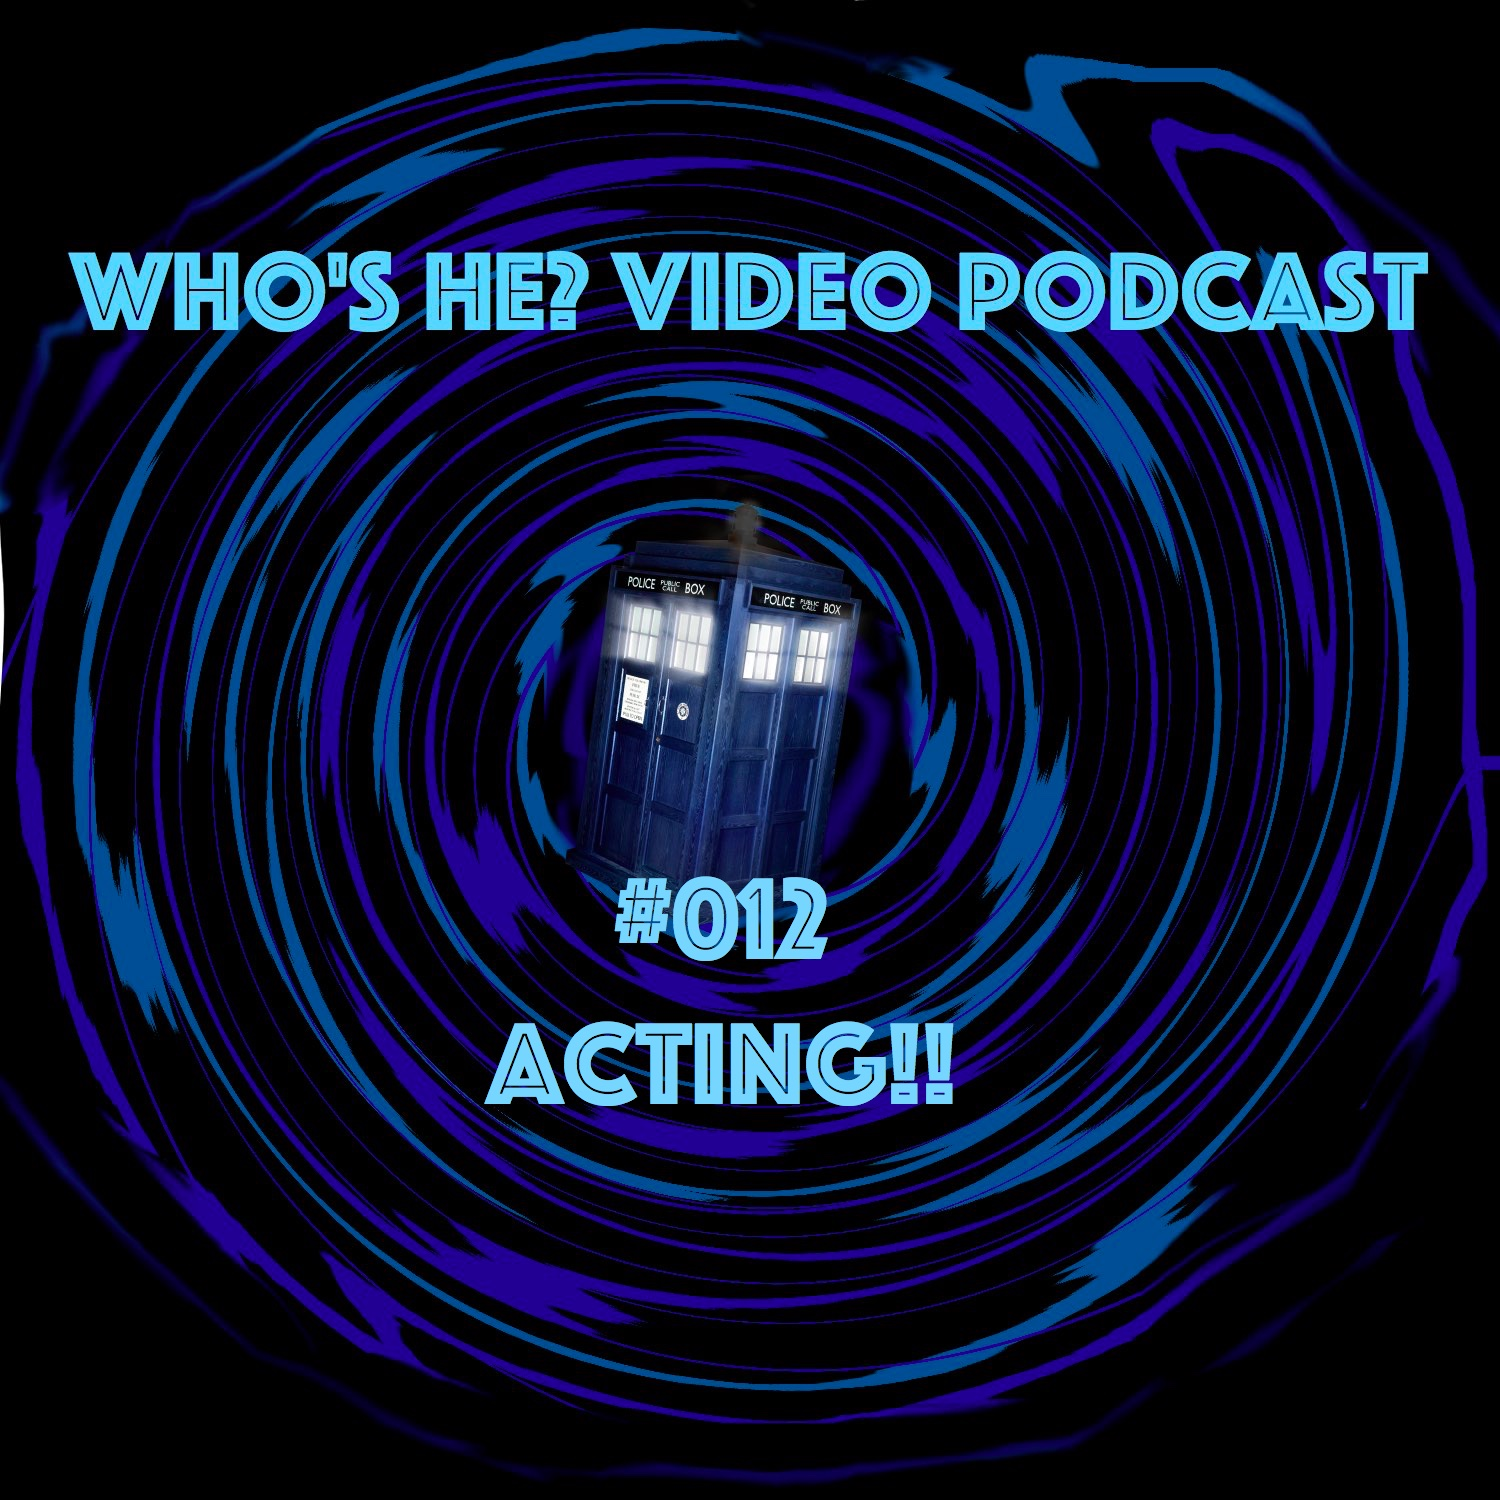 Artwork for Who's He? Video Podcast #012 ACTING!!